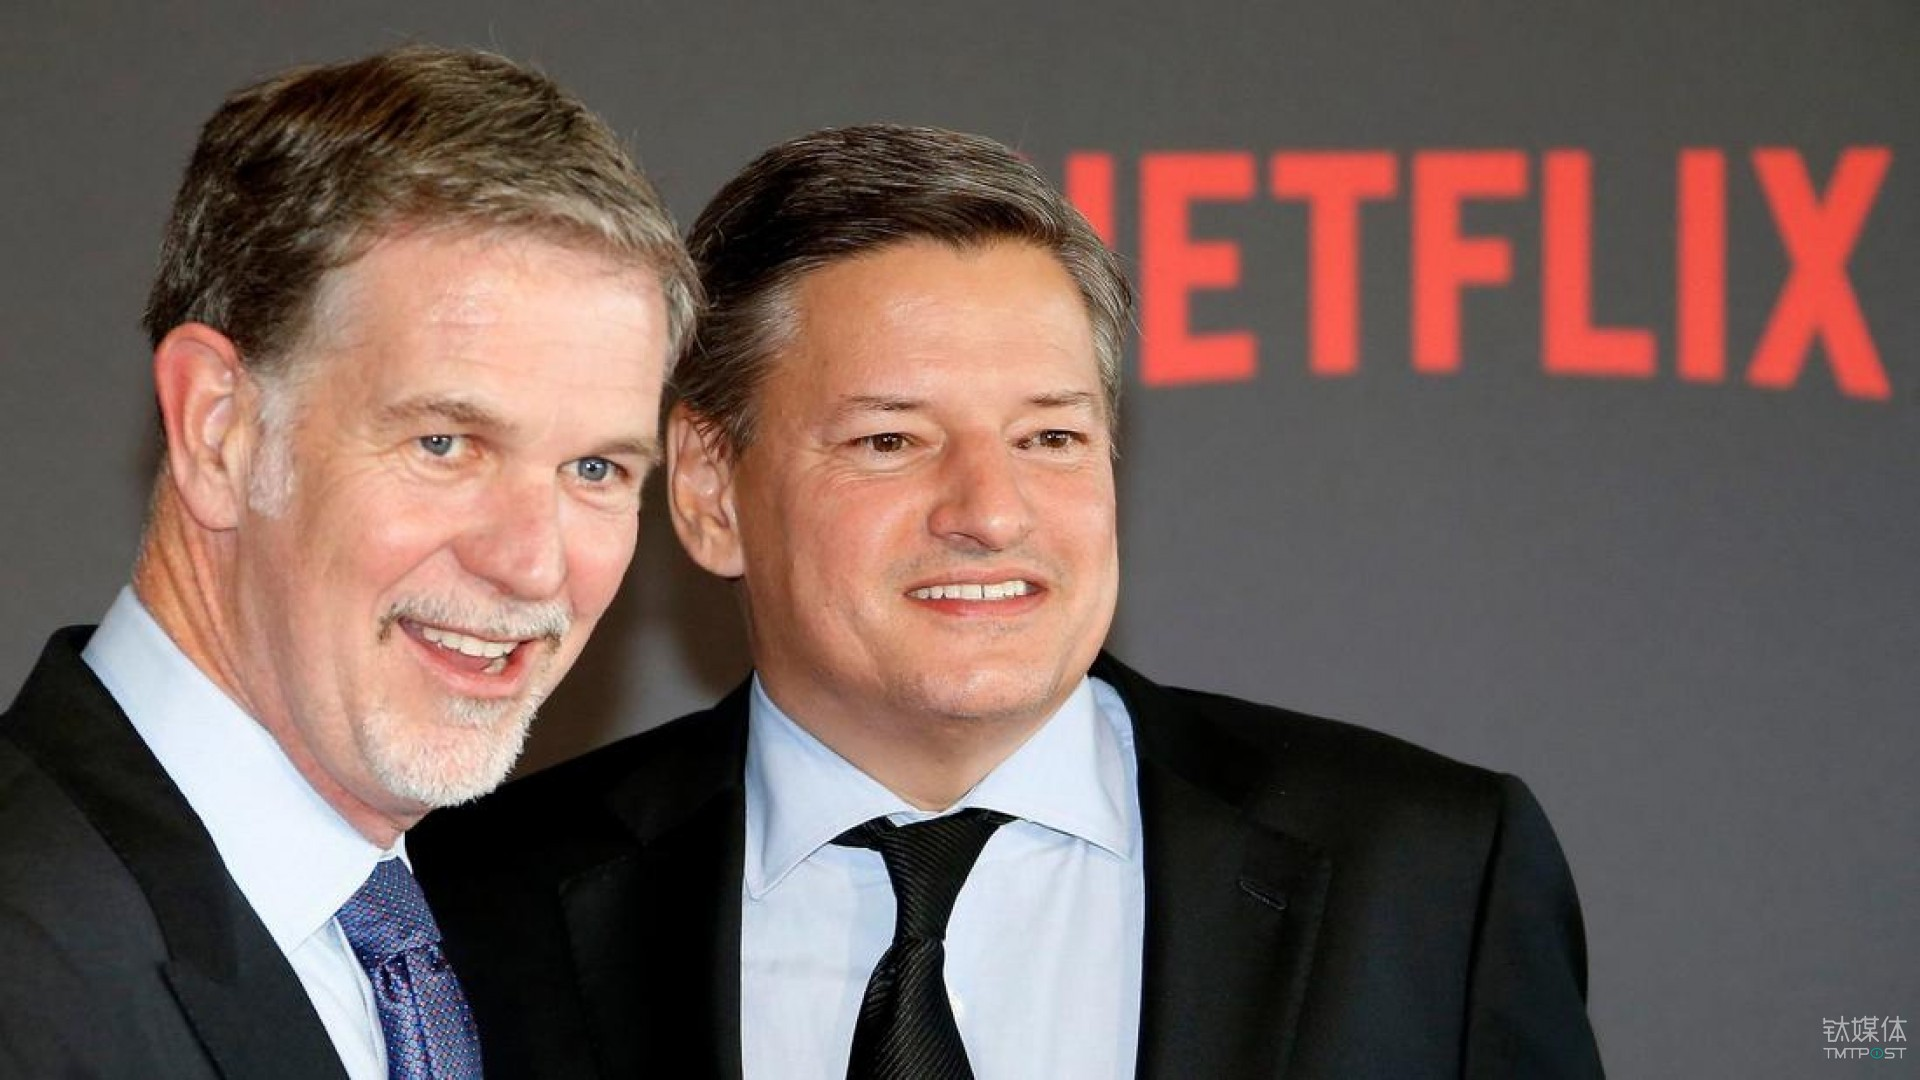 Netflix co-founder and CEO Reed Hastings, left, and Chief Content Officer Ted Sarandos in 2016. (Guillaume Horcajuelo / EPA)